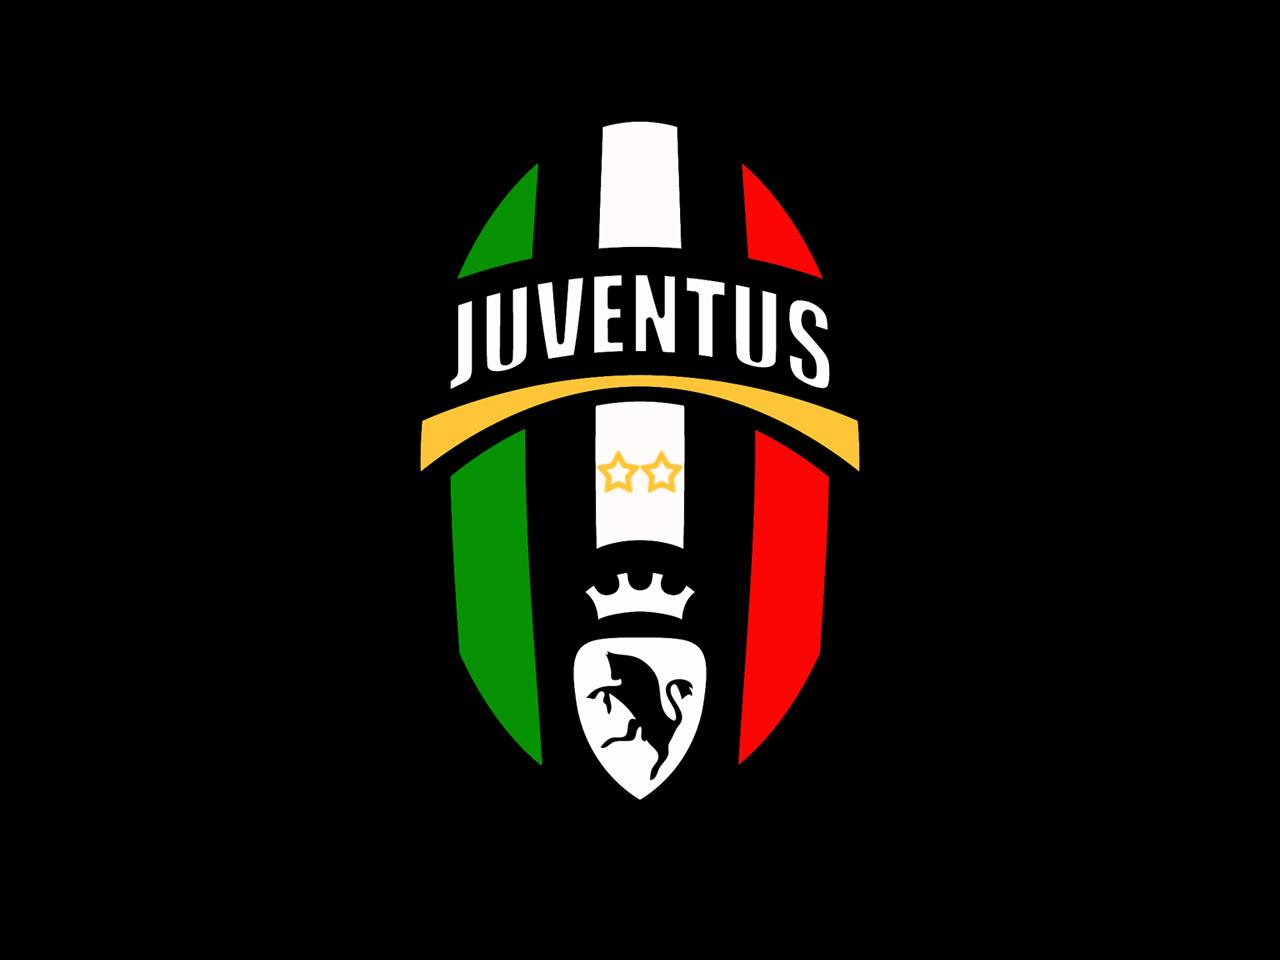 free download juventus logo 13426 hd wallpapers in football imagescicom 1280x960 for your desktop mobile tablet explore 77 juventus wallpaper juventus logo wallpaper juventus wallpaper for computer juventus logo 13426 hd wallpapers